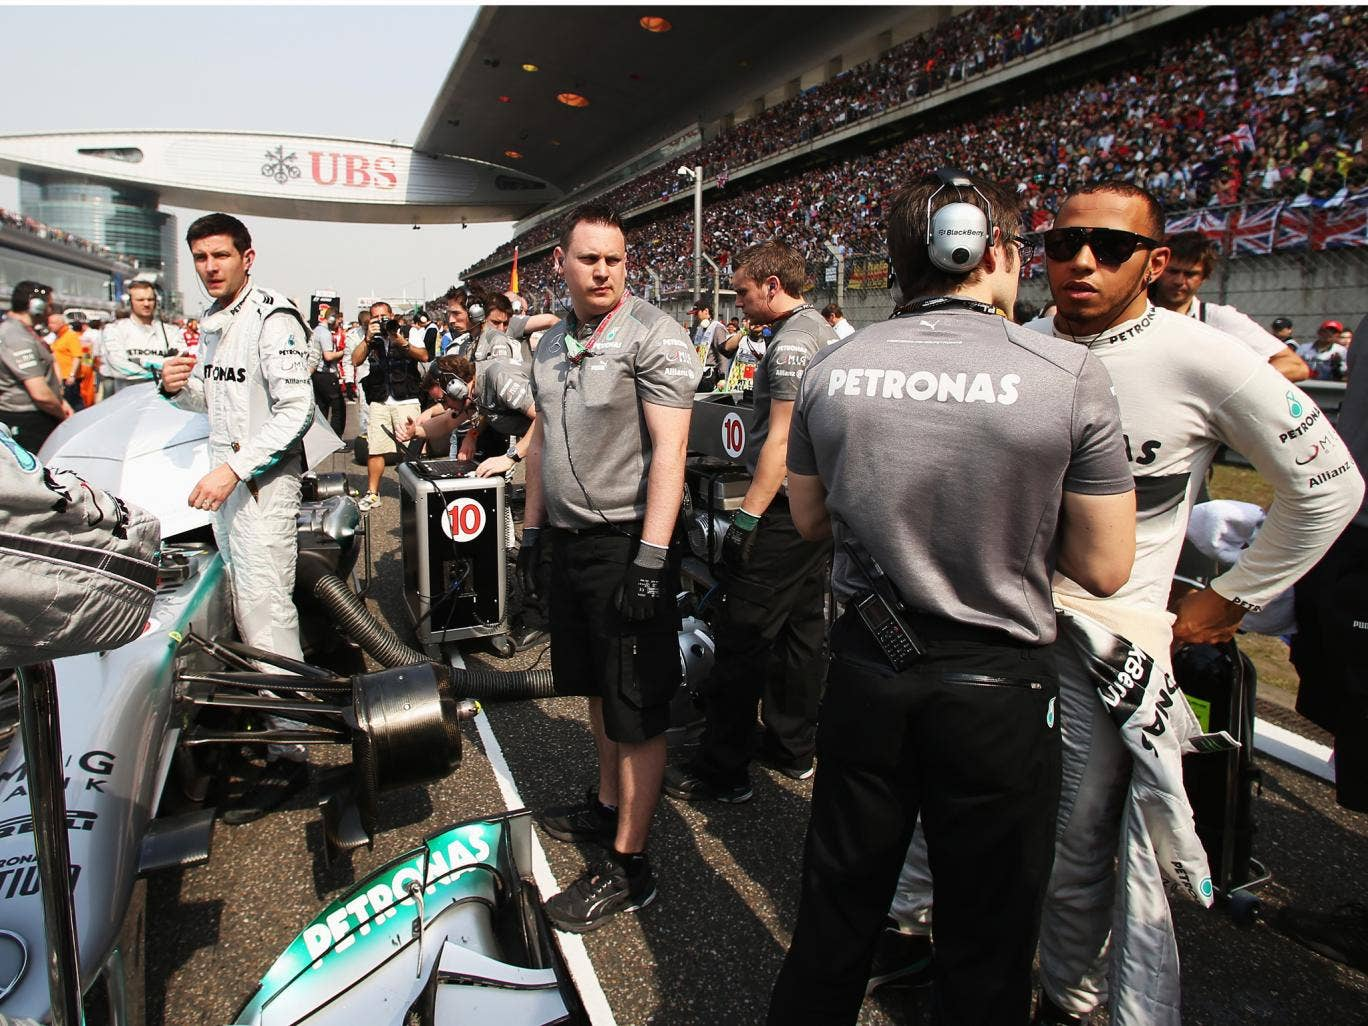 Lewis Hamilton's switch from McLaren to Mercedes has so far been successful given he has taken a pole position and two third places